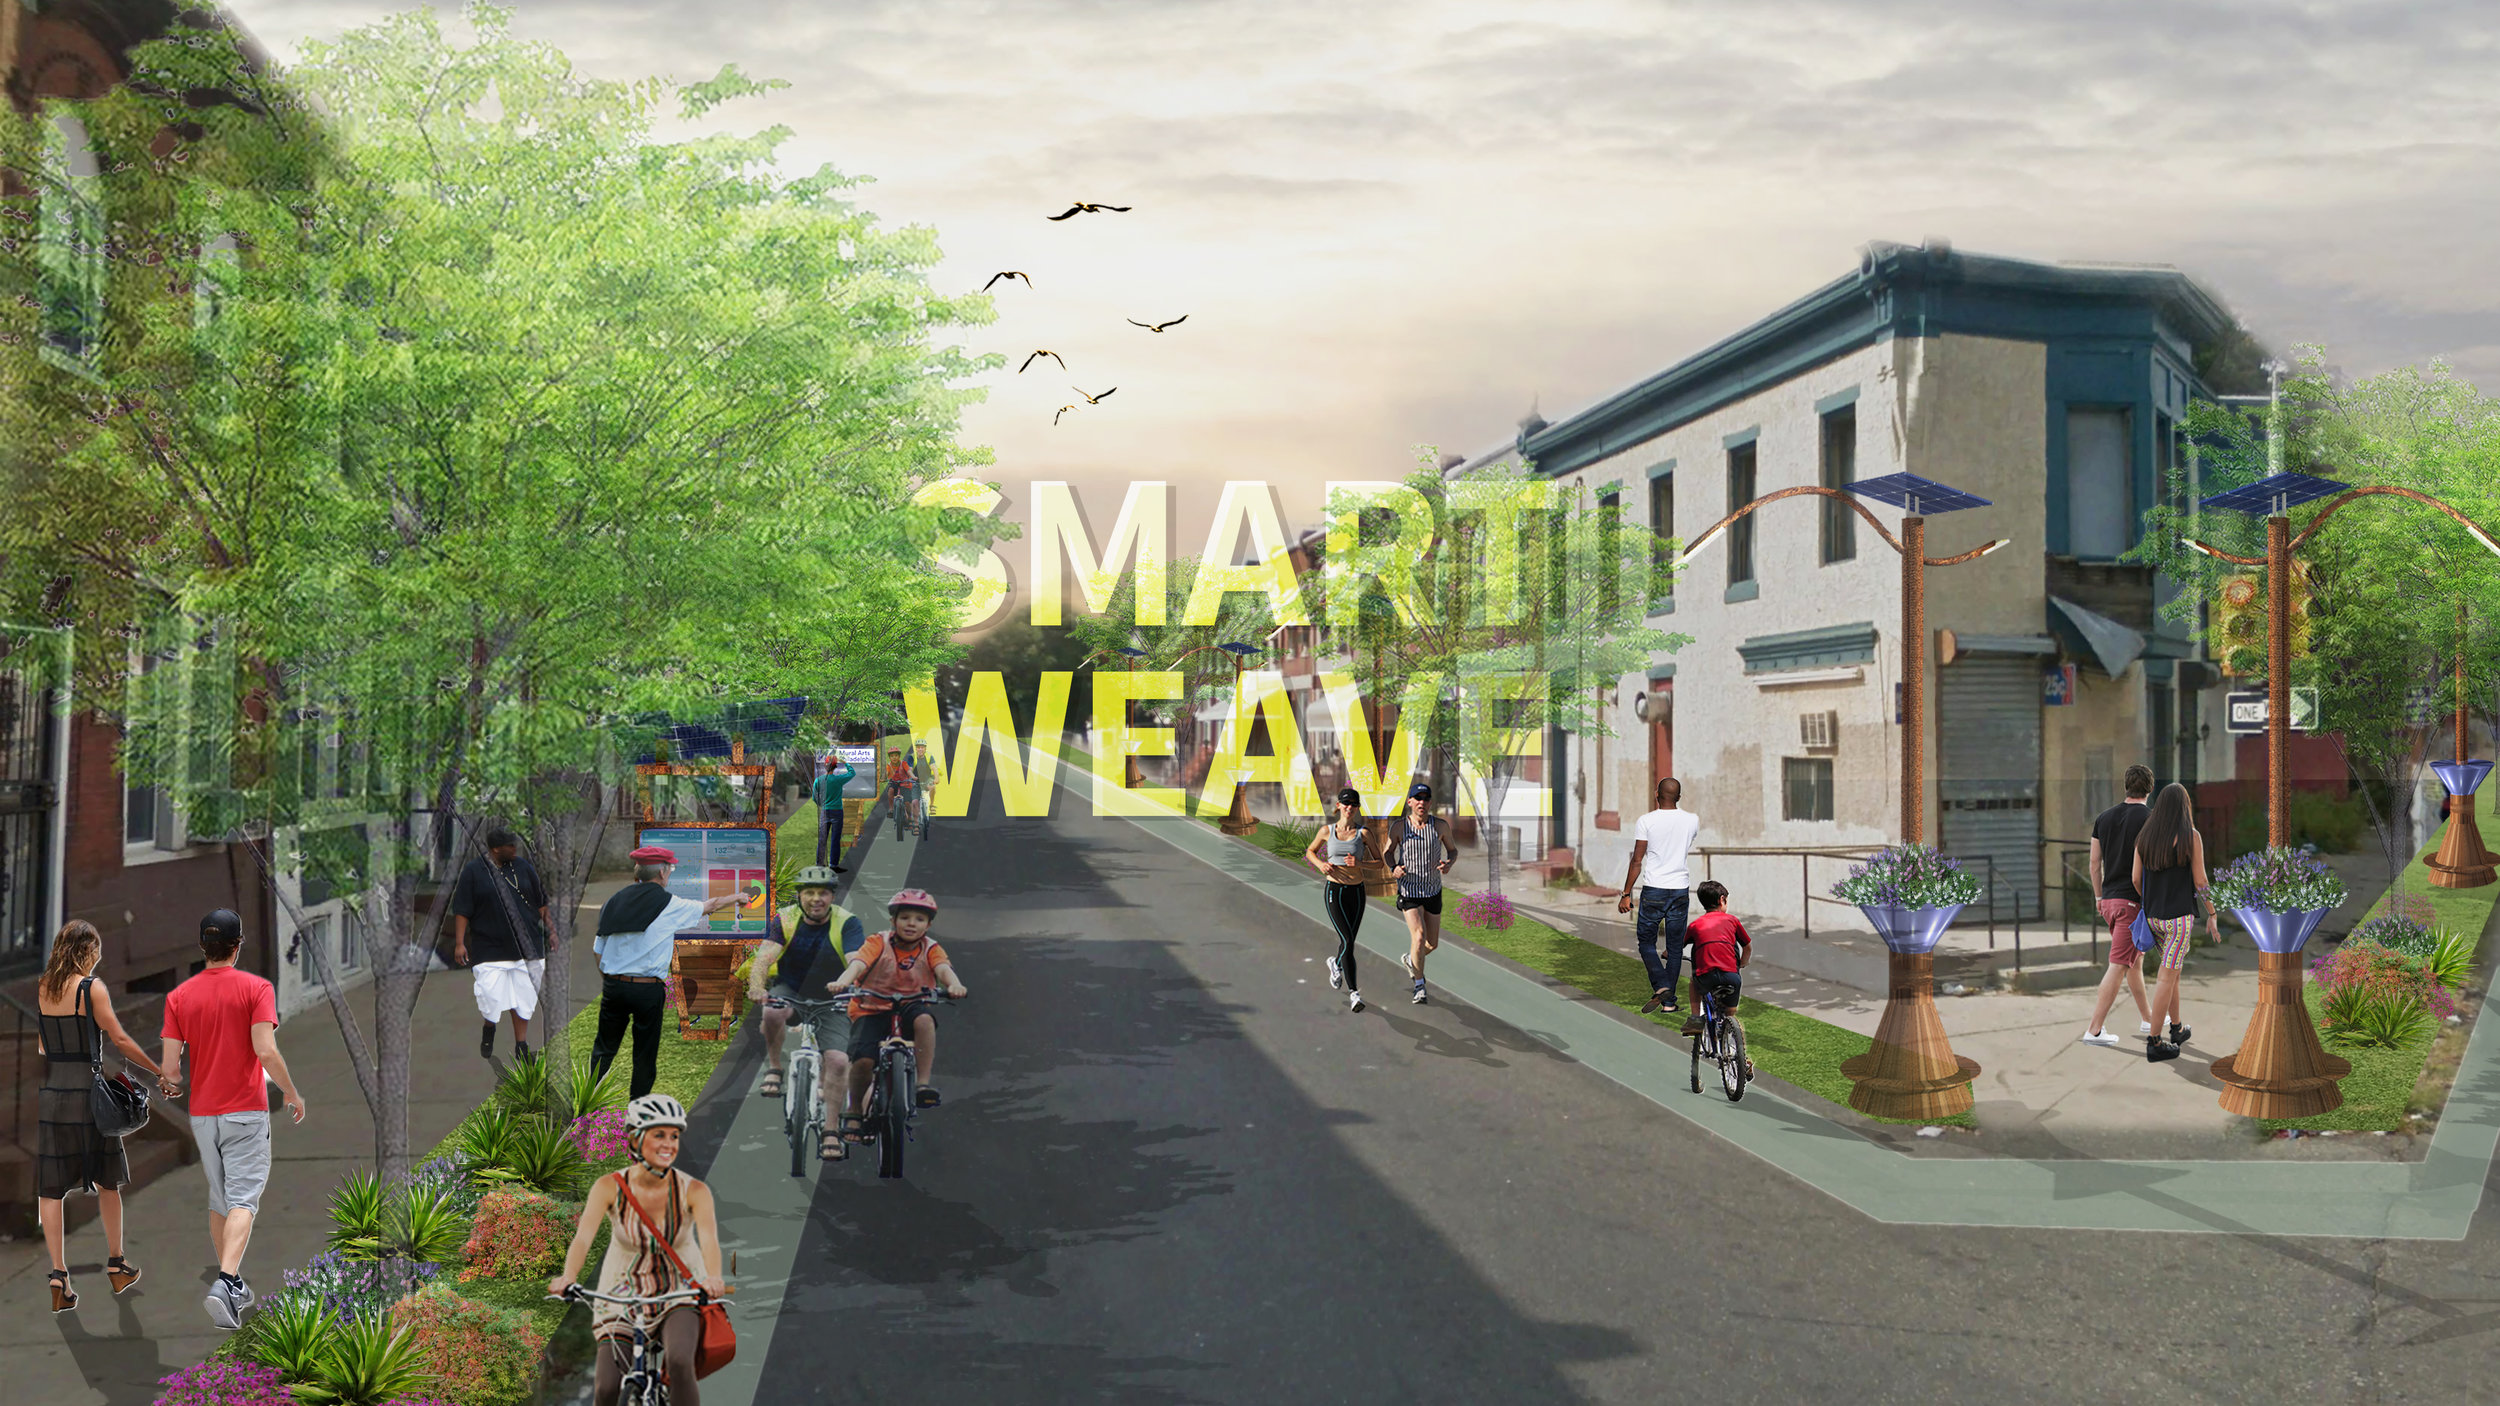 DESIGN COMPETITION SPOTLIGHT: SMART WEAVE - BY SAM FONTAYE, University of New Mexico, FIRST PLACE WINNER